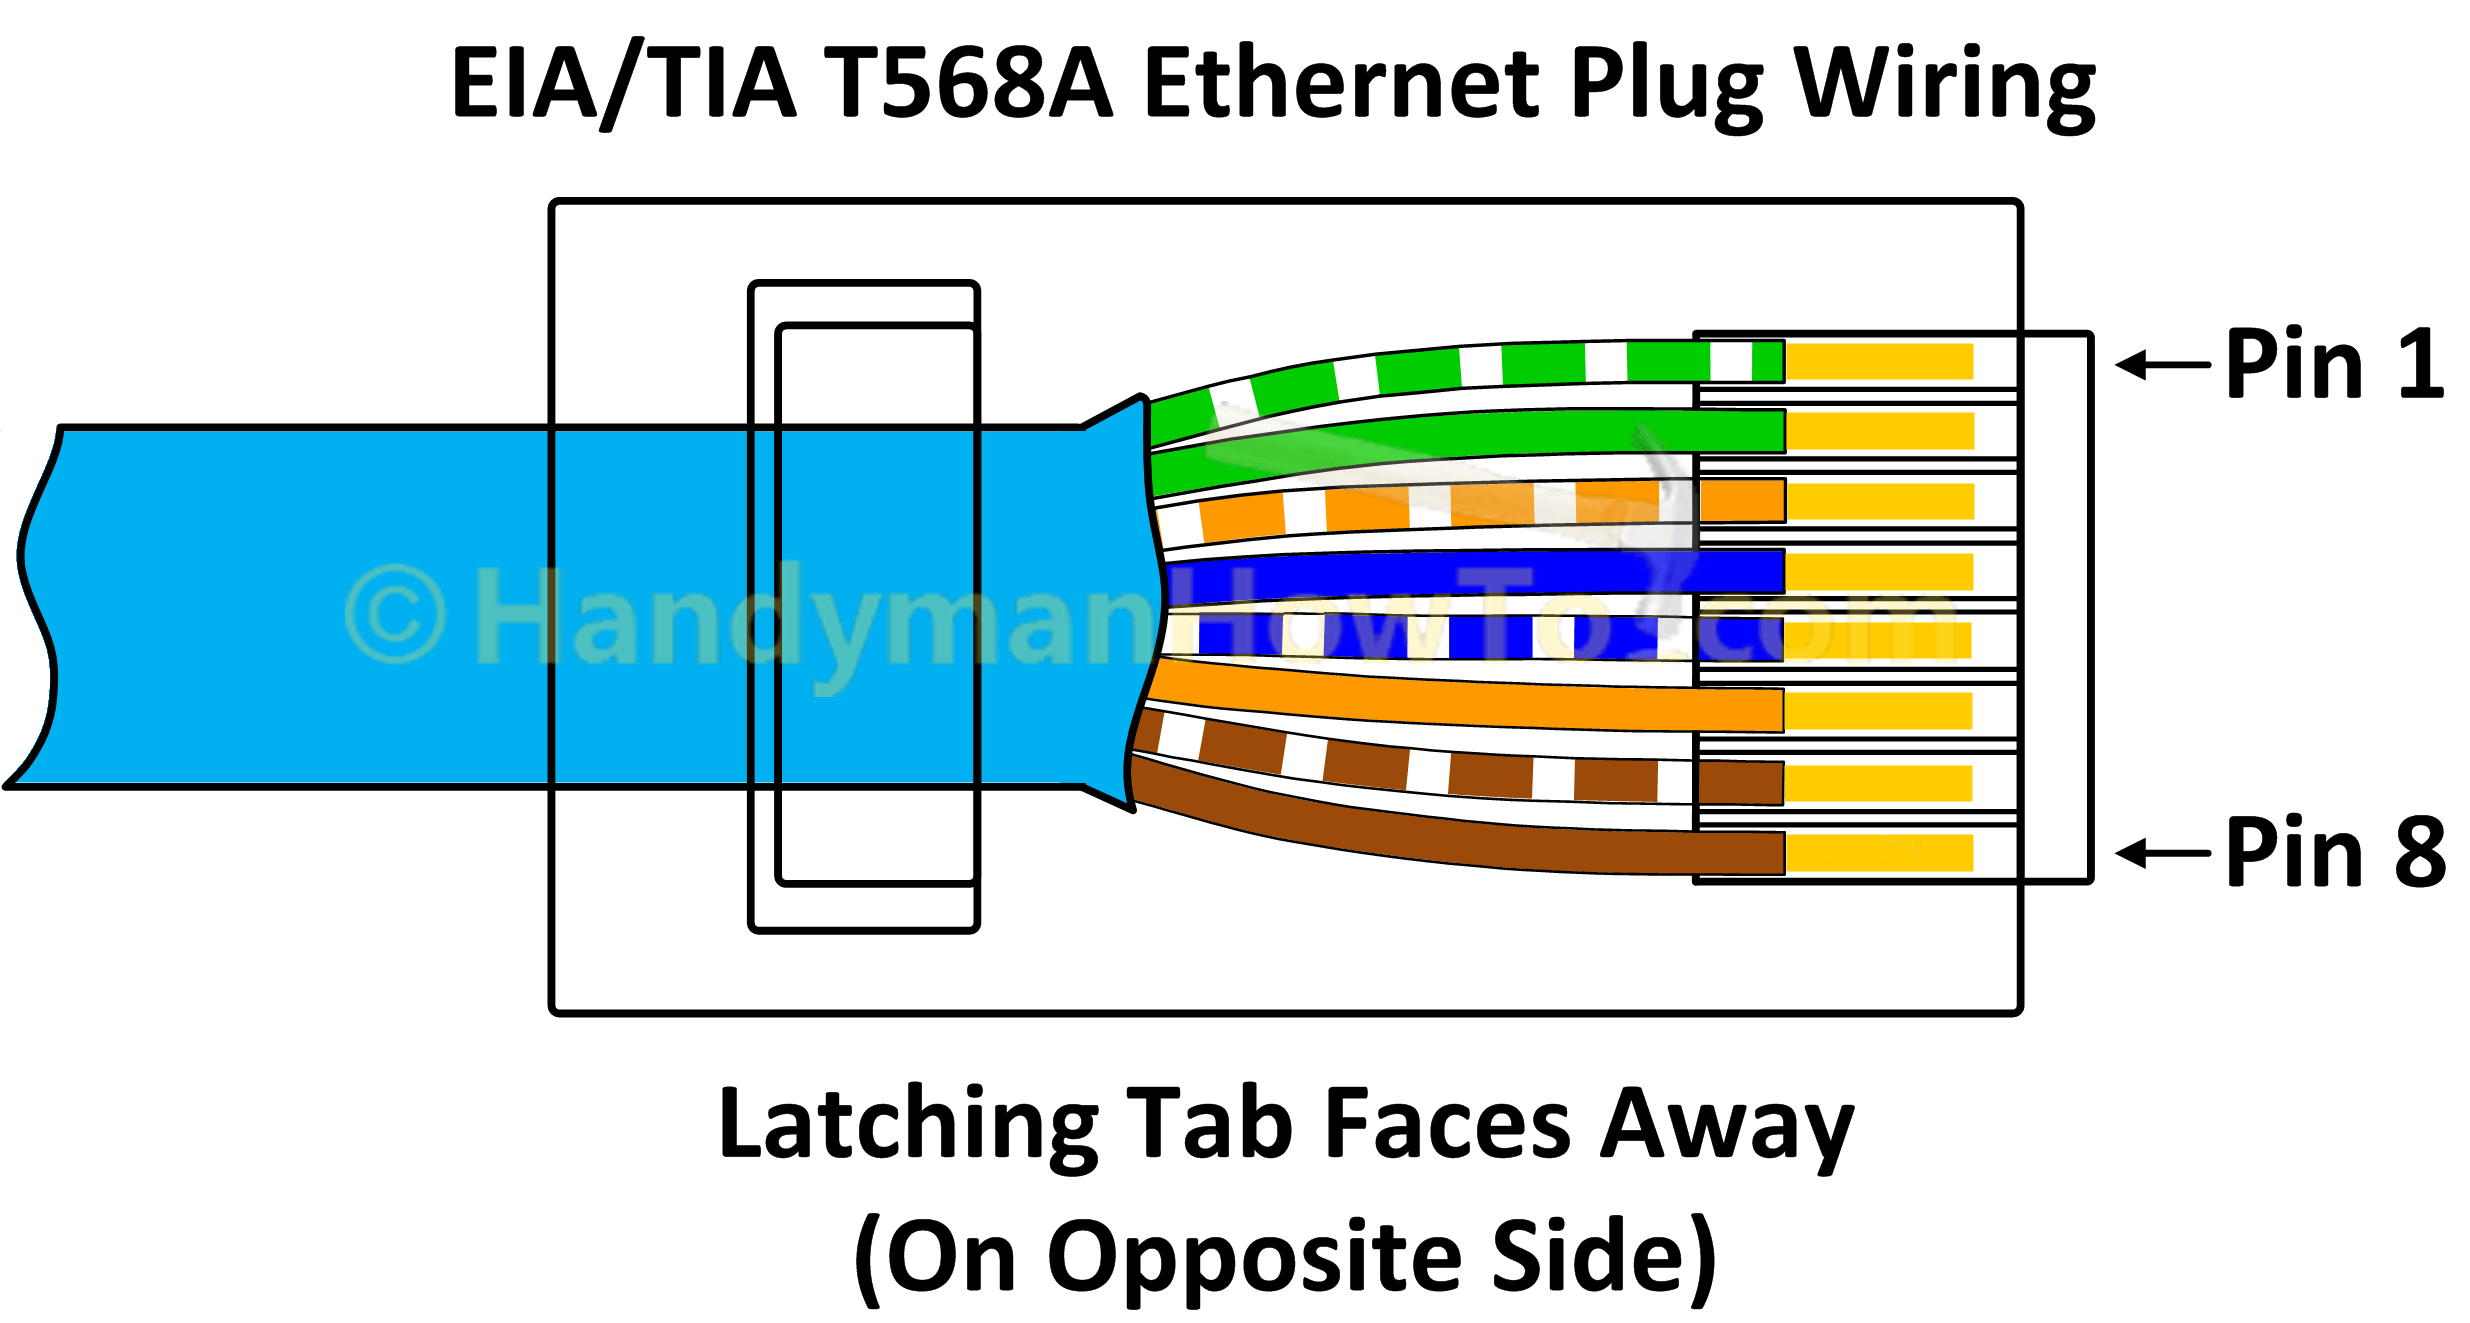 Eia 568B Wiring Diagram - Wiring Diagrams Hubs - 568B Wiring Diagram